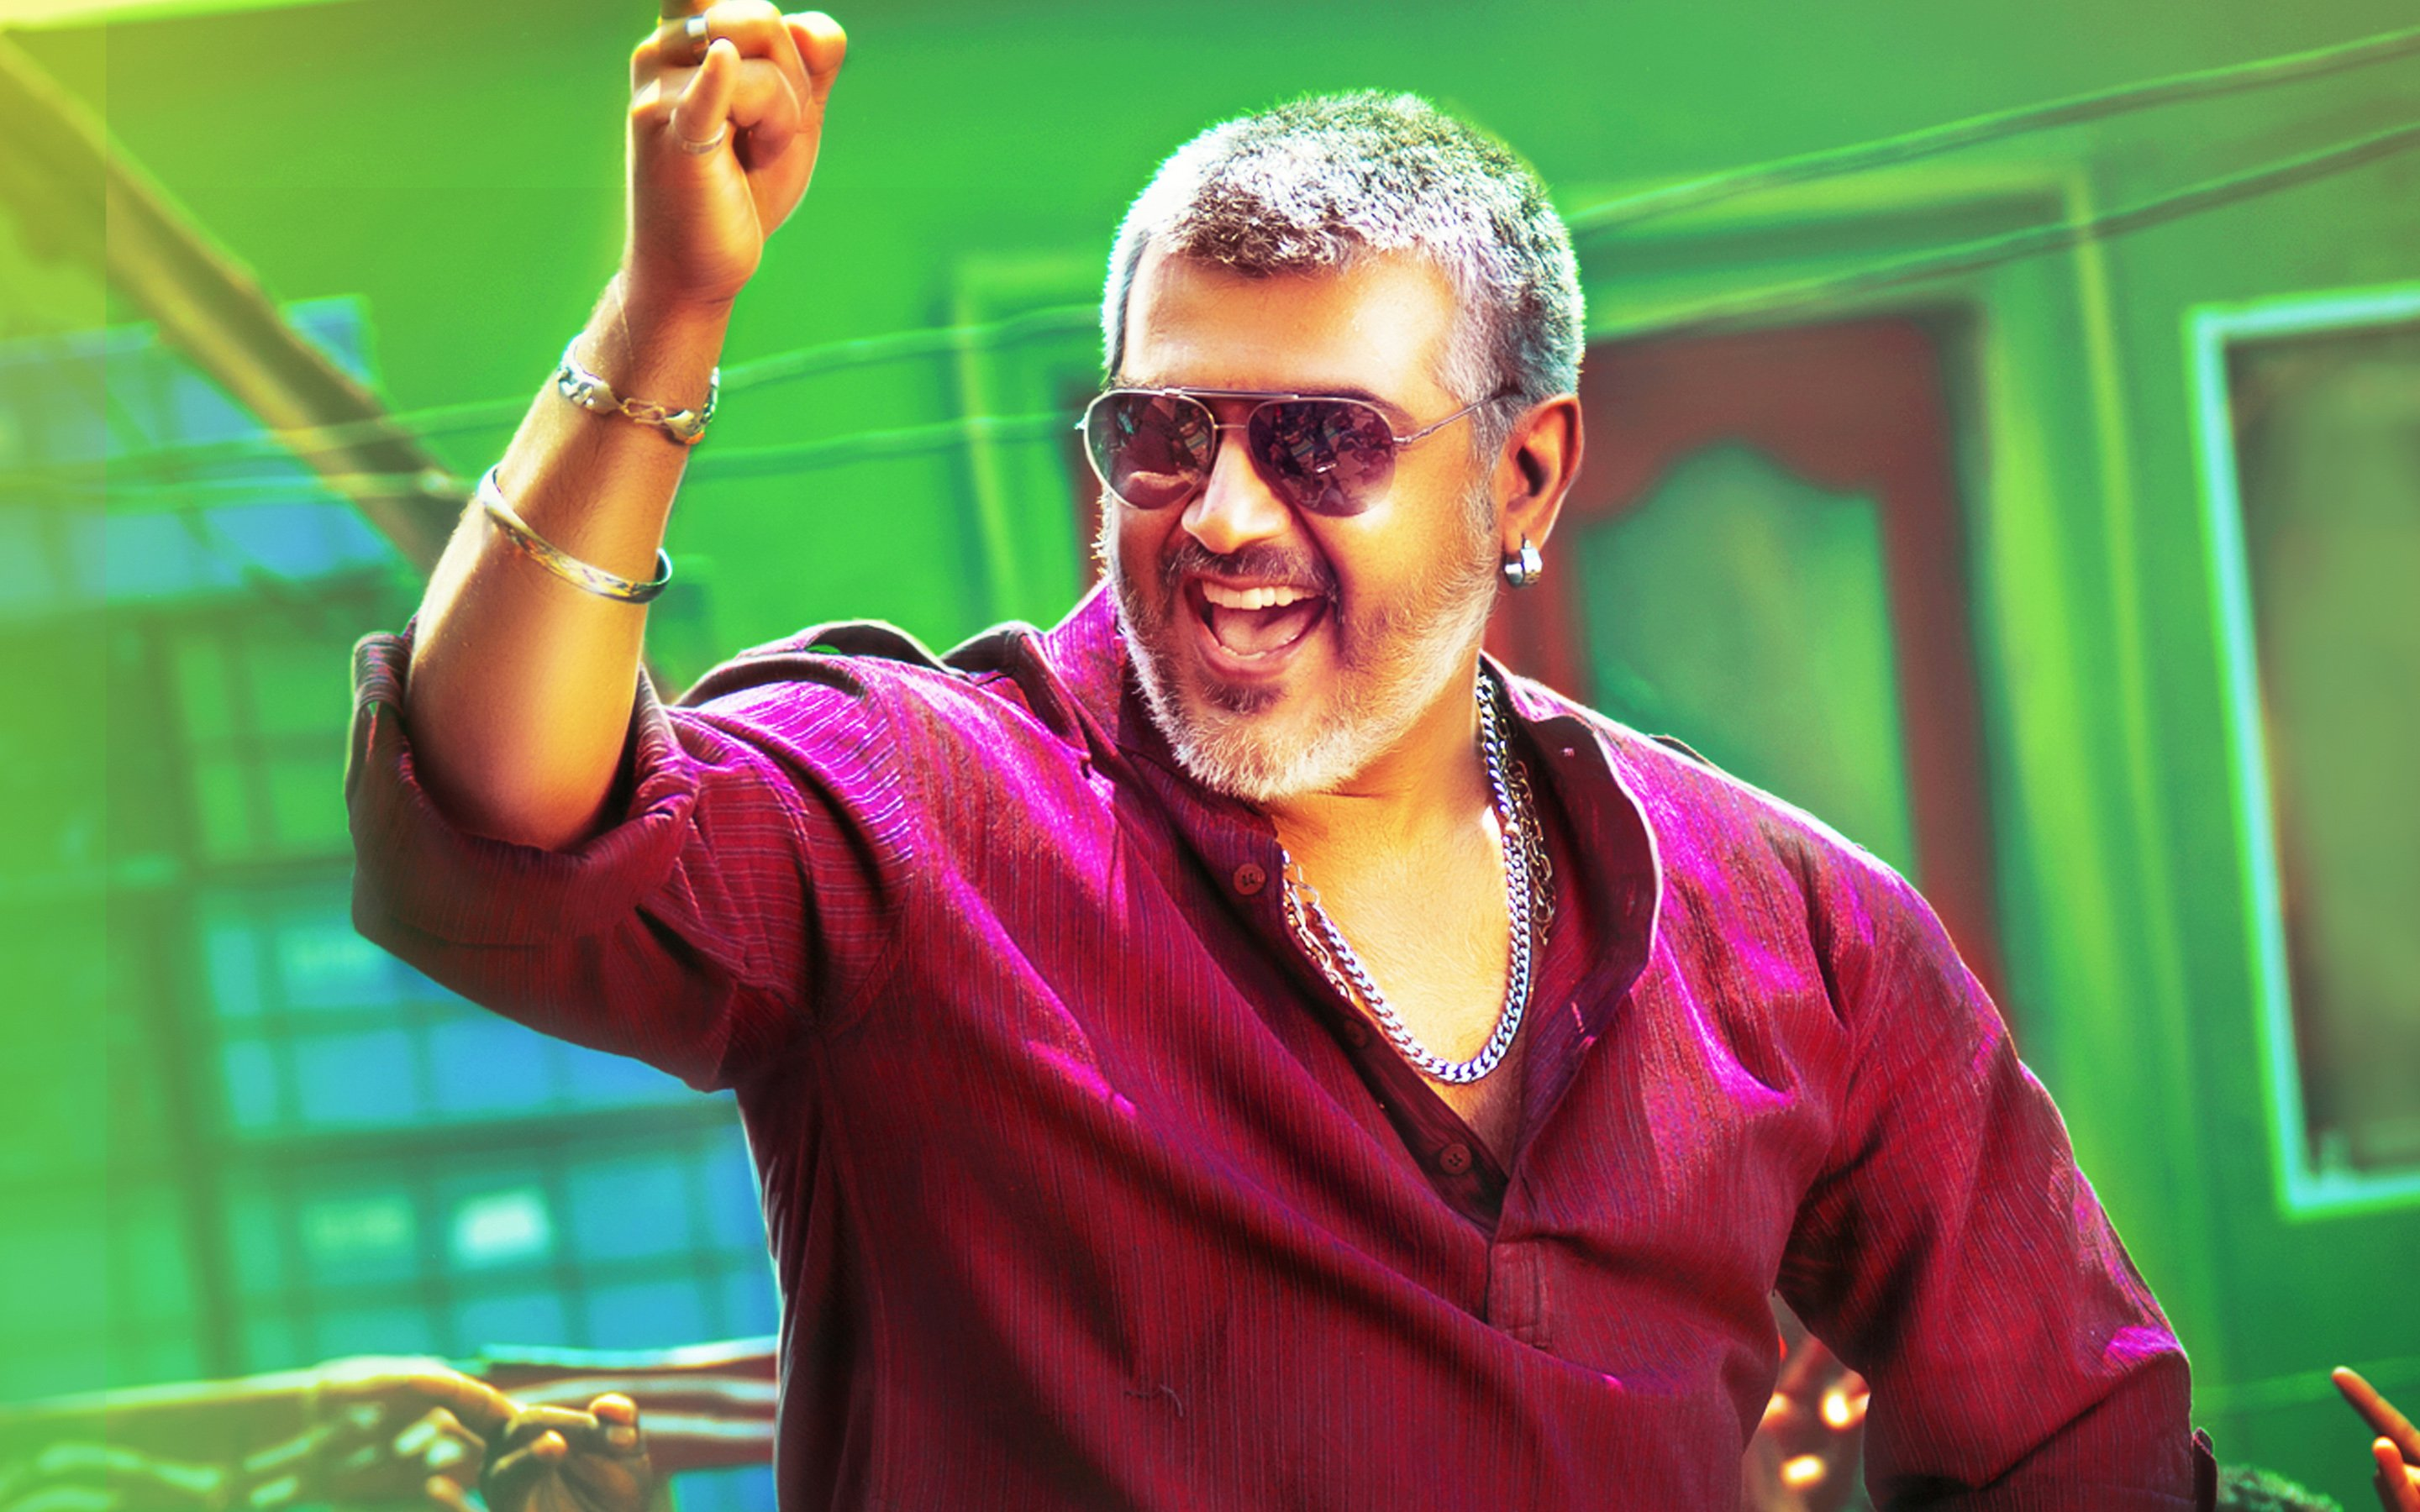 Desktop Hd Thala Ajith Fantastic Dance Syylie Mobile Free Download Wallpaper Mass Pictures